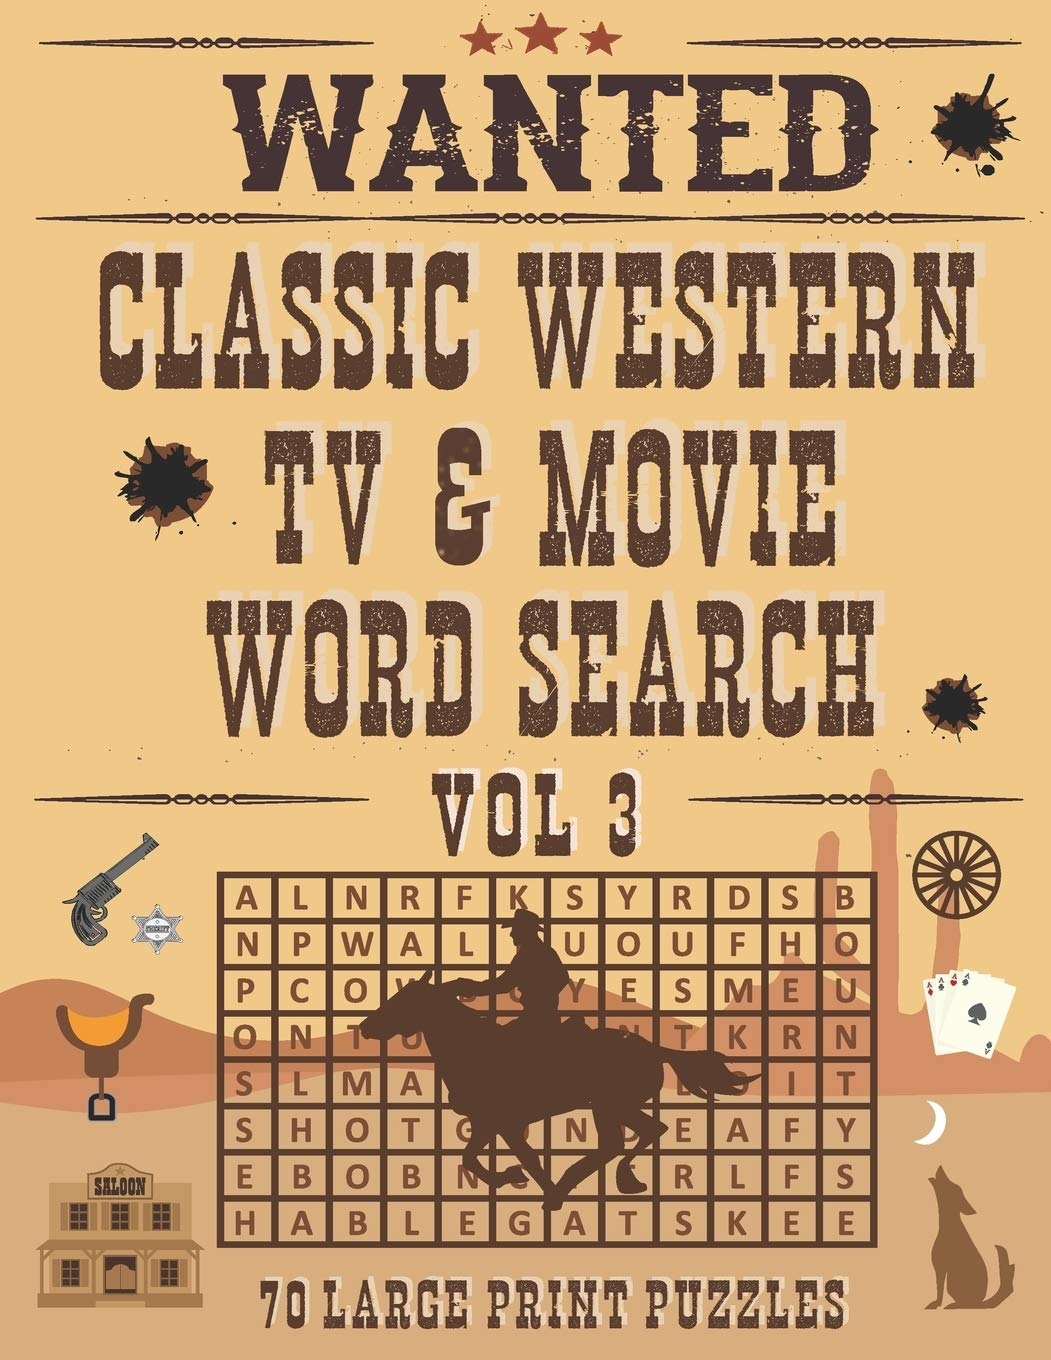 Classic Western TV & Movie Word Search, Volume 3, 70 Large Print Puzzles: TV Western Puzzle Book For Adults Who Love Old West Cowboy TV Shows & Movies